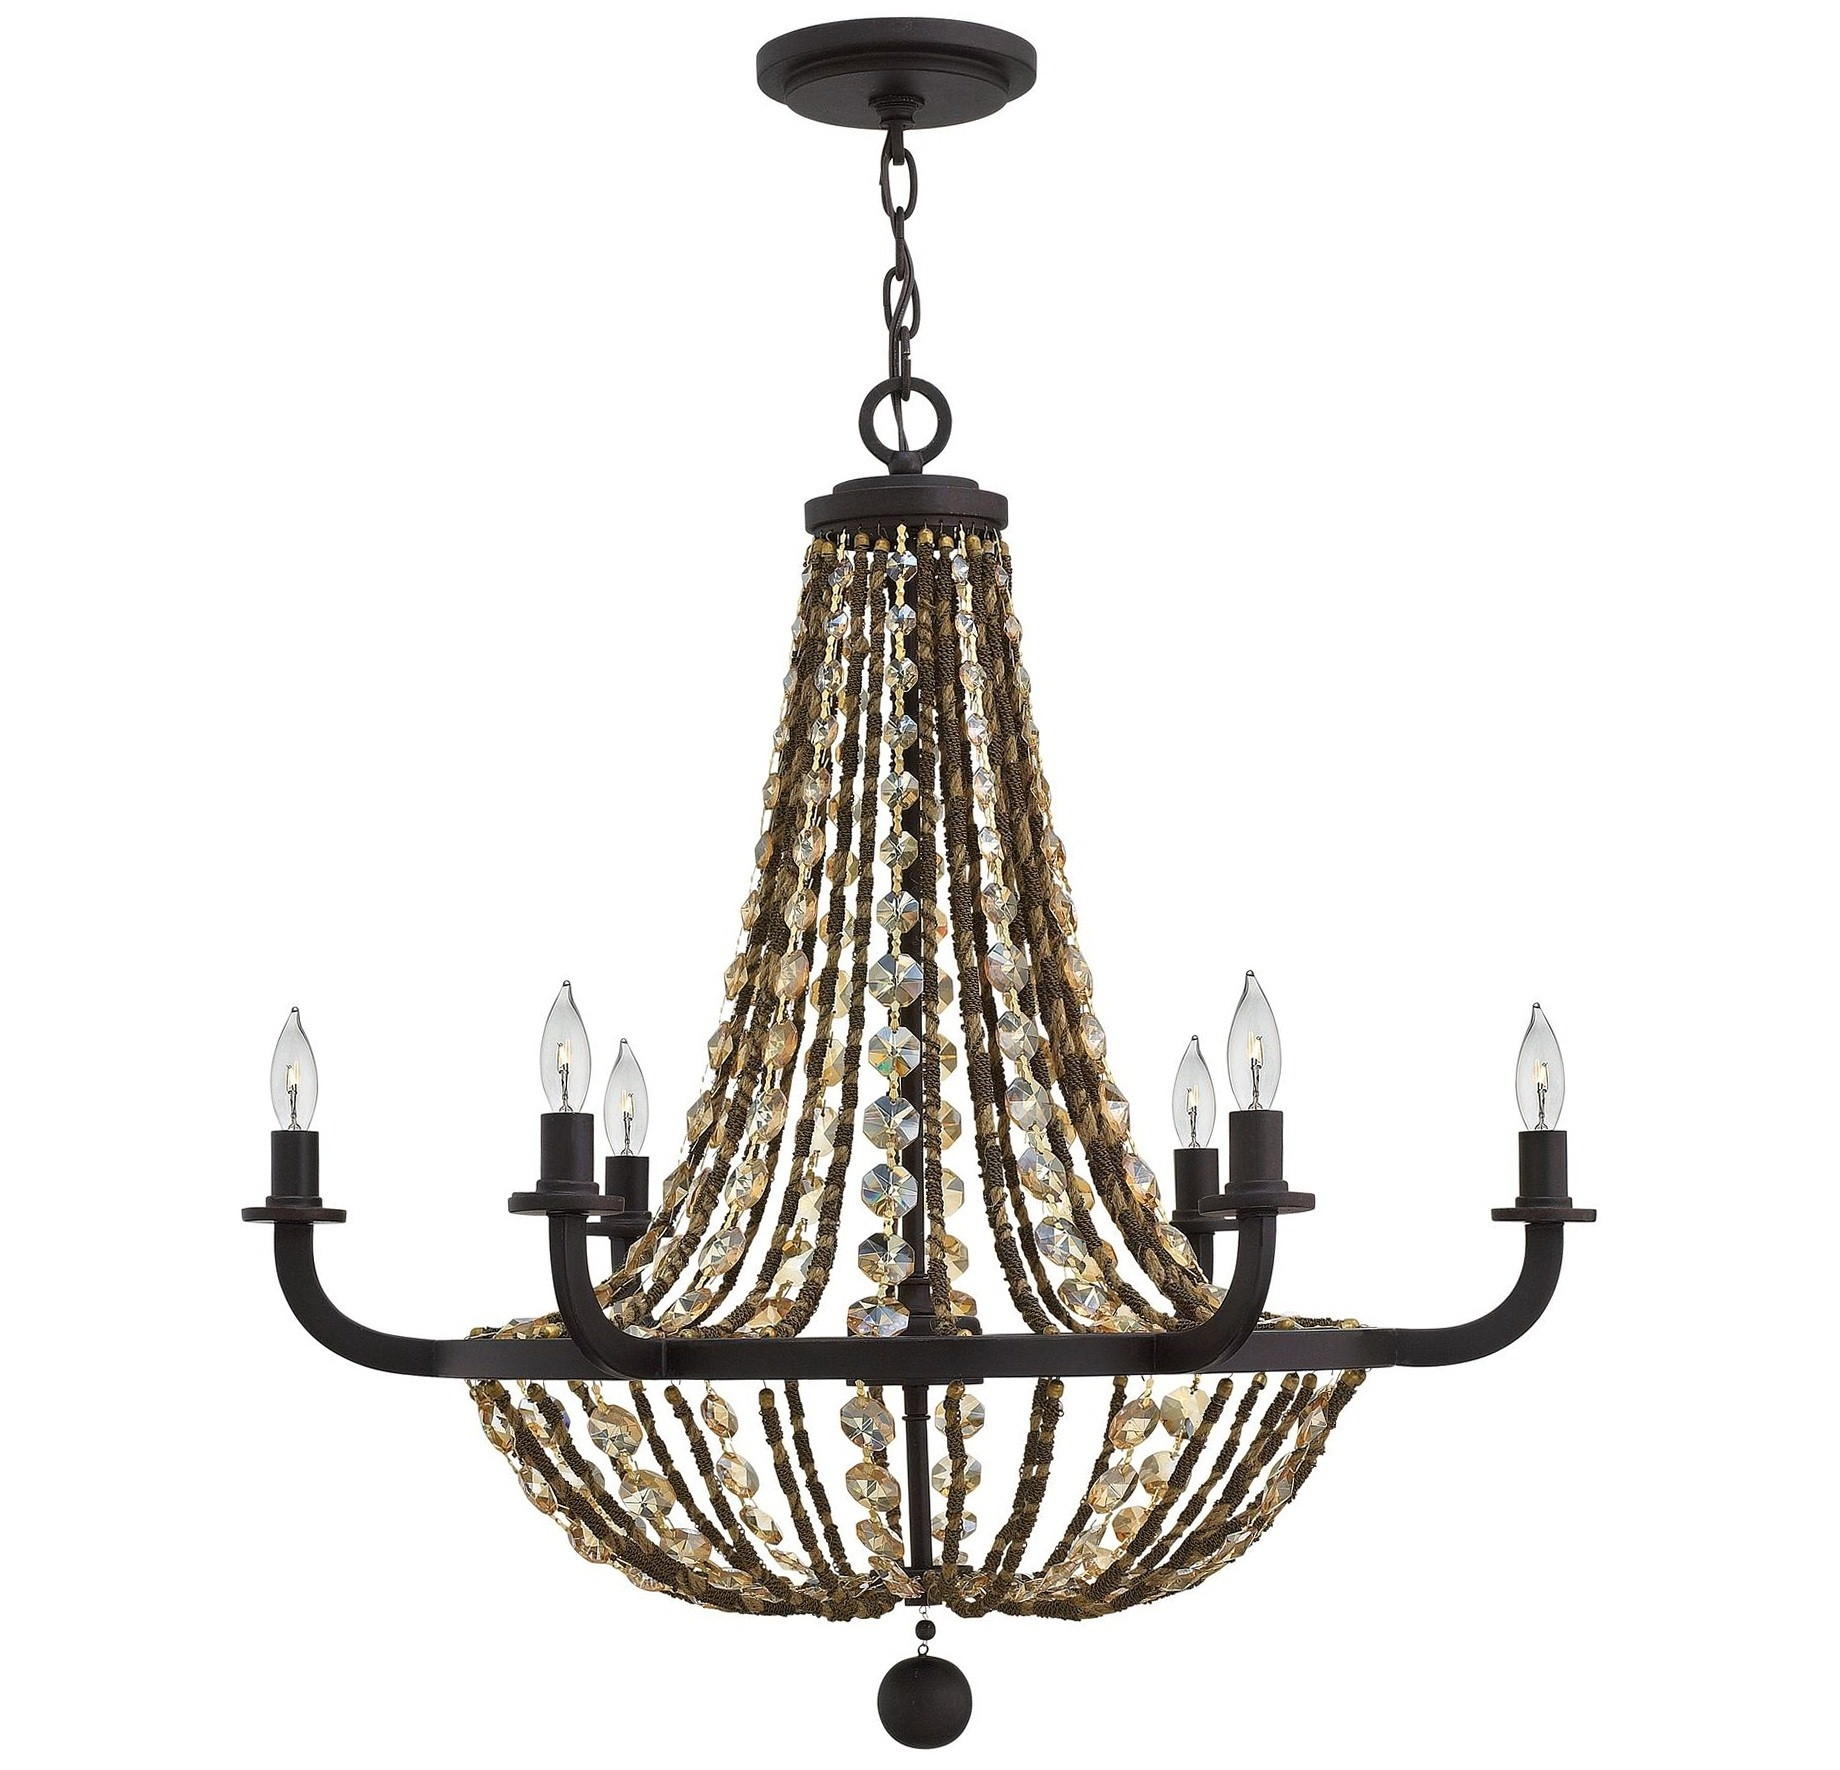 Chandelier Chandelier Extra Large Modern Hangingierextraierlarge Throughout Large Bronze Chandelier (#6 of 12)